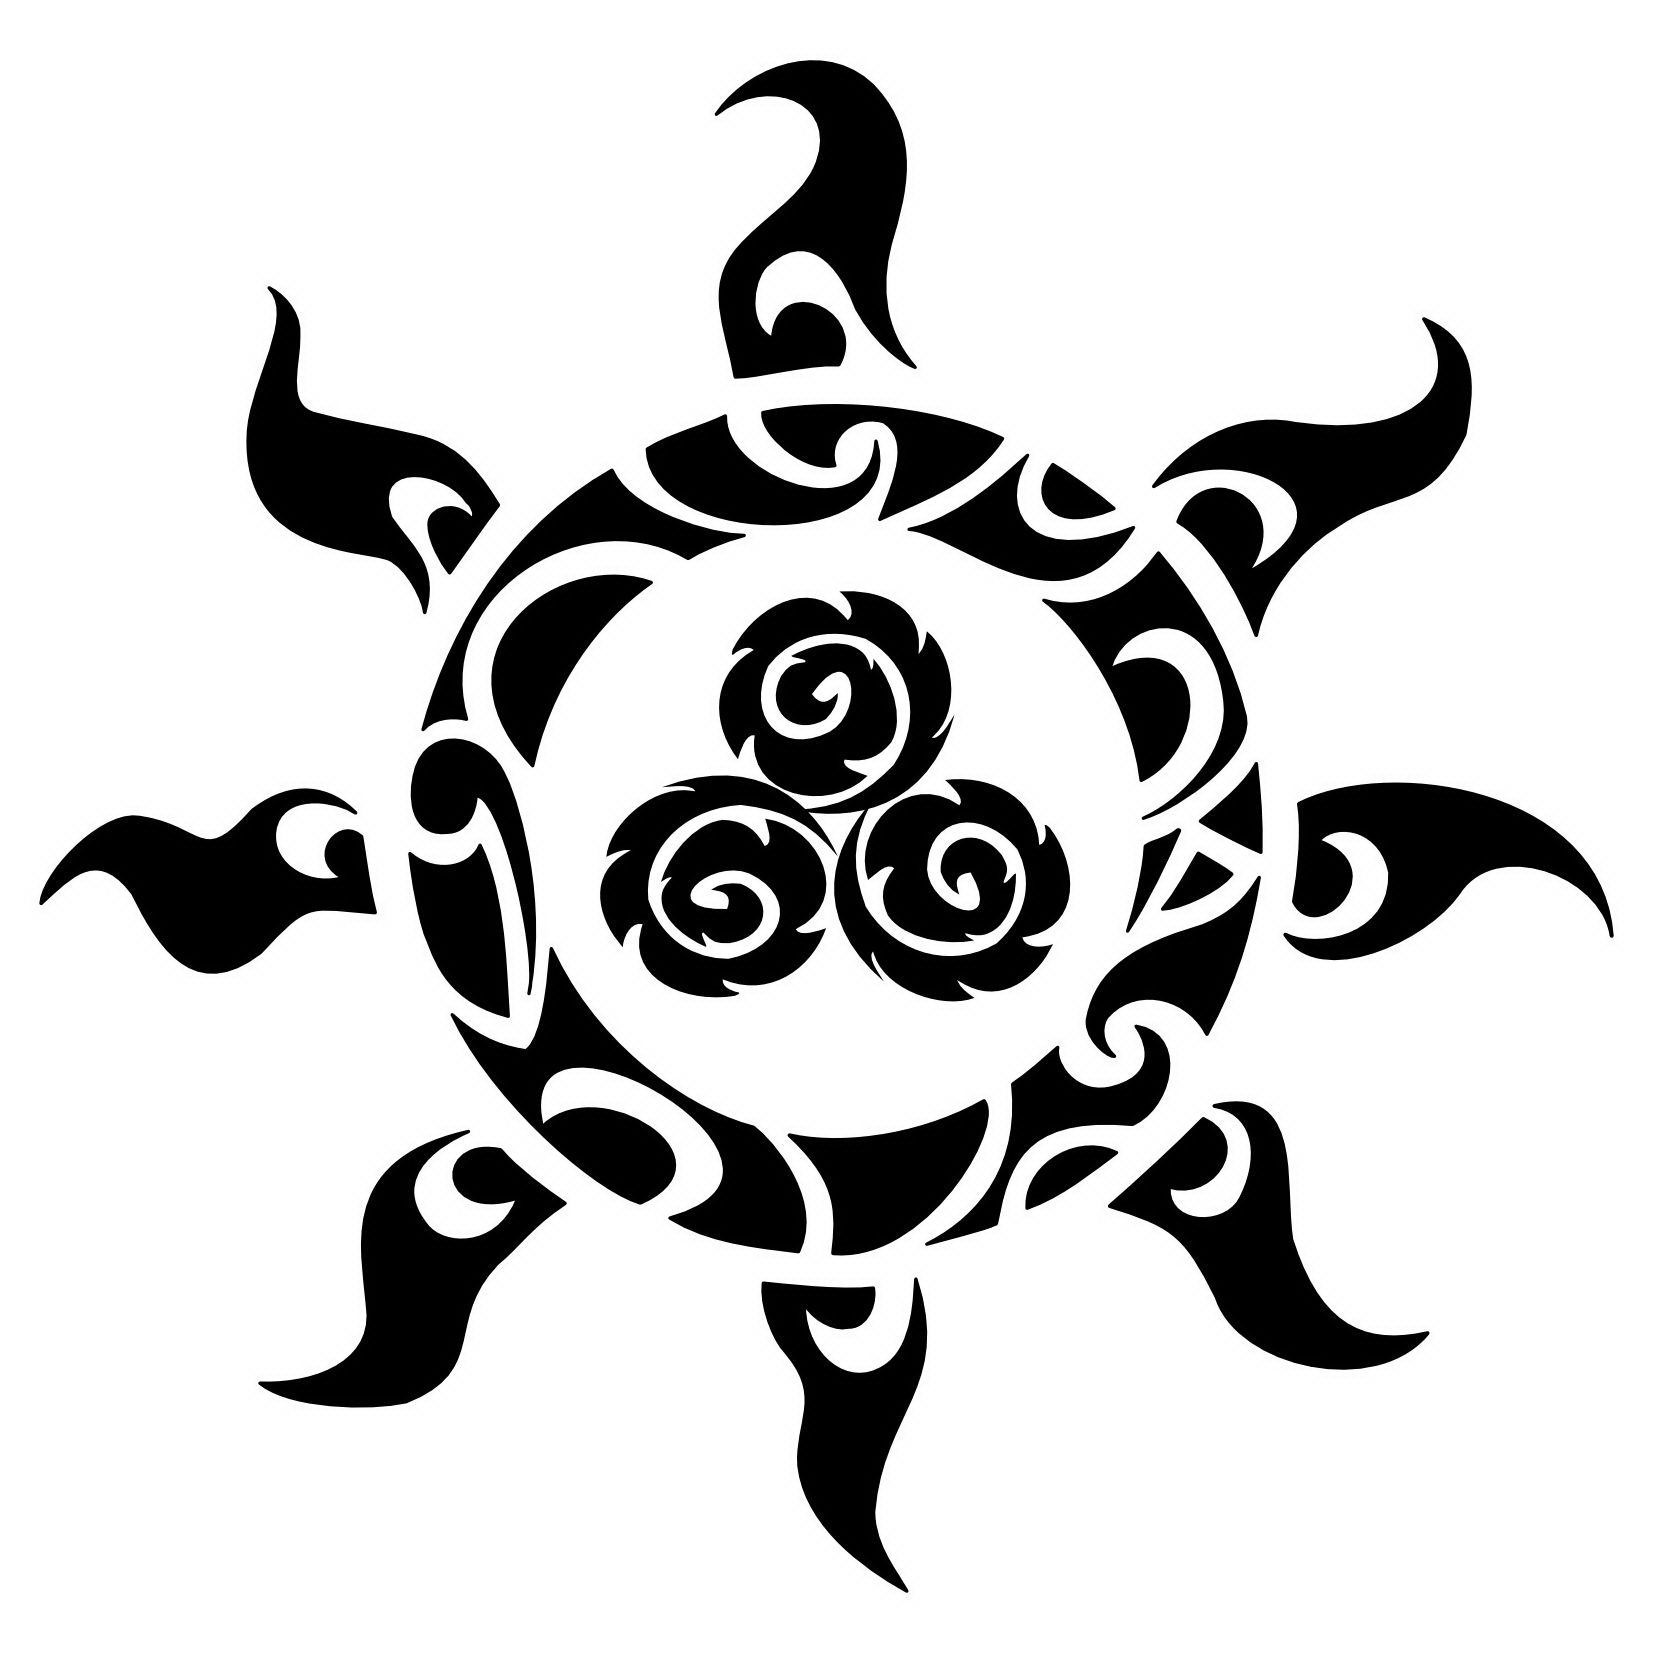 Image Black Rose Tattoo Designs Meaning Image Dqeqg High